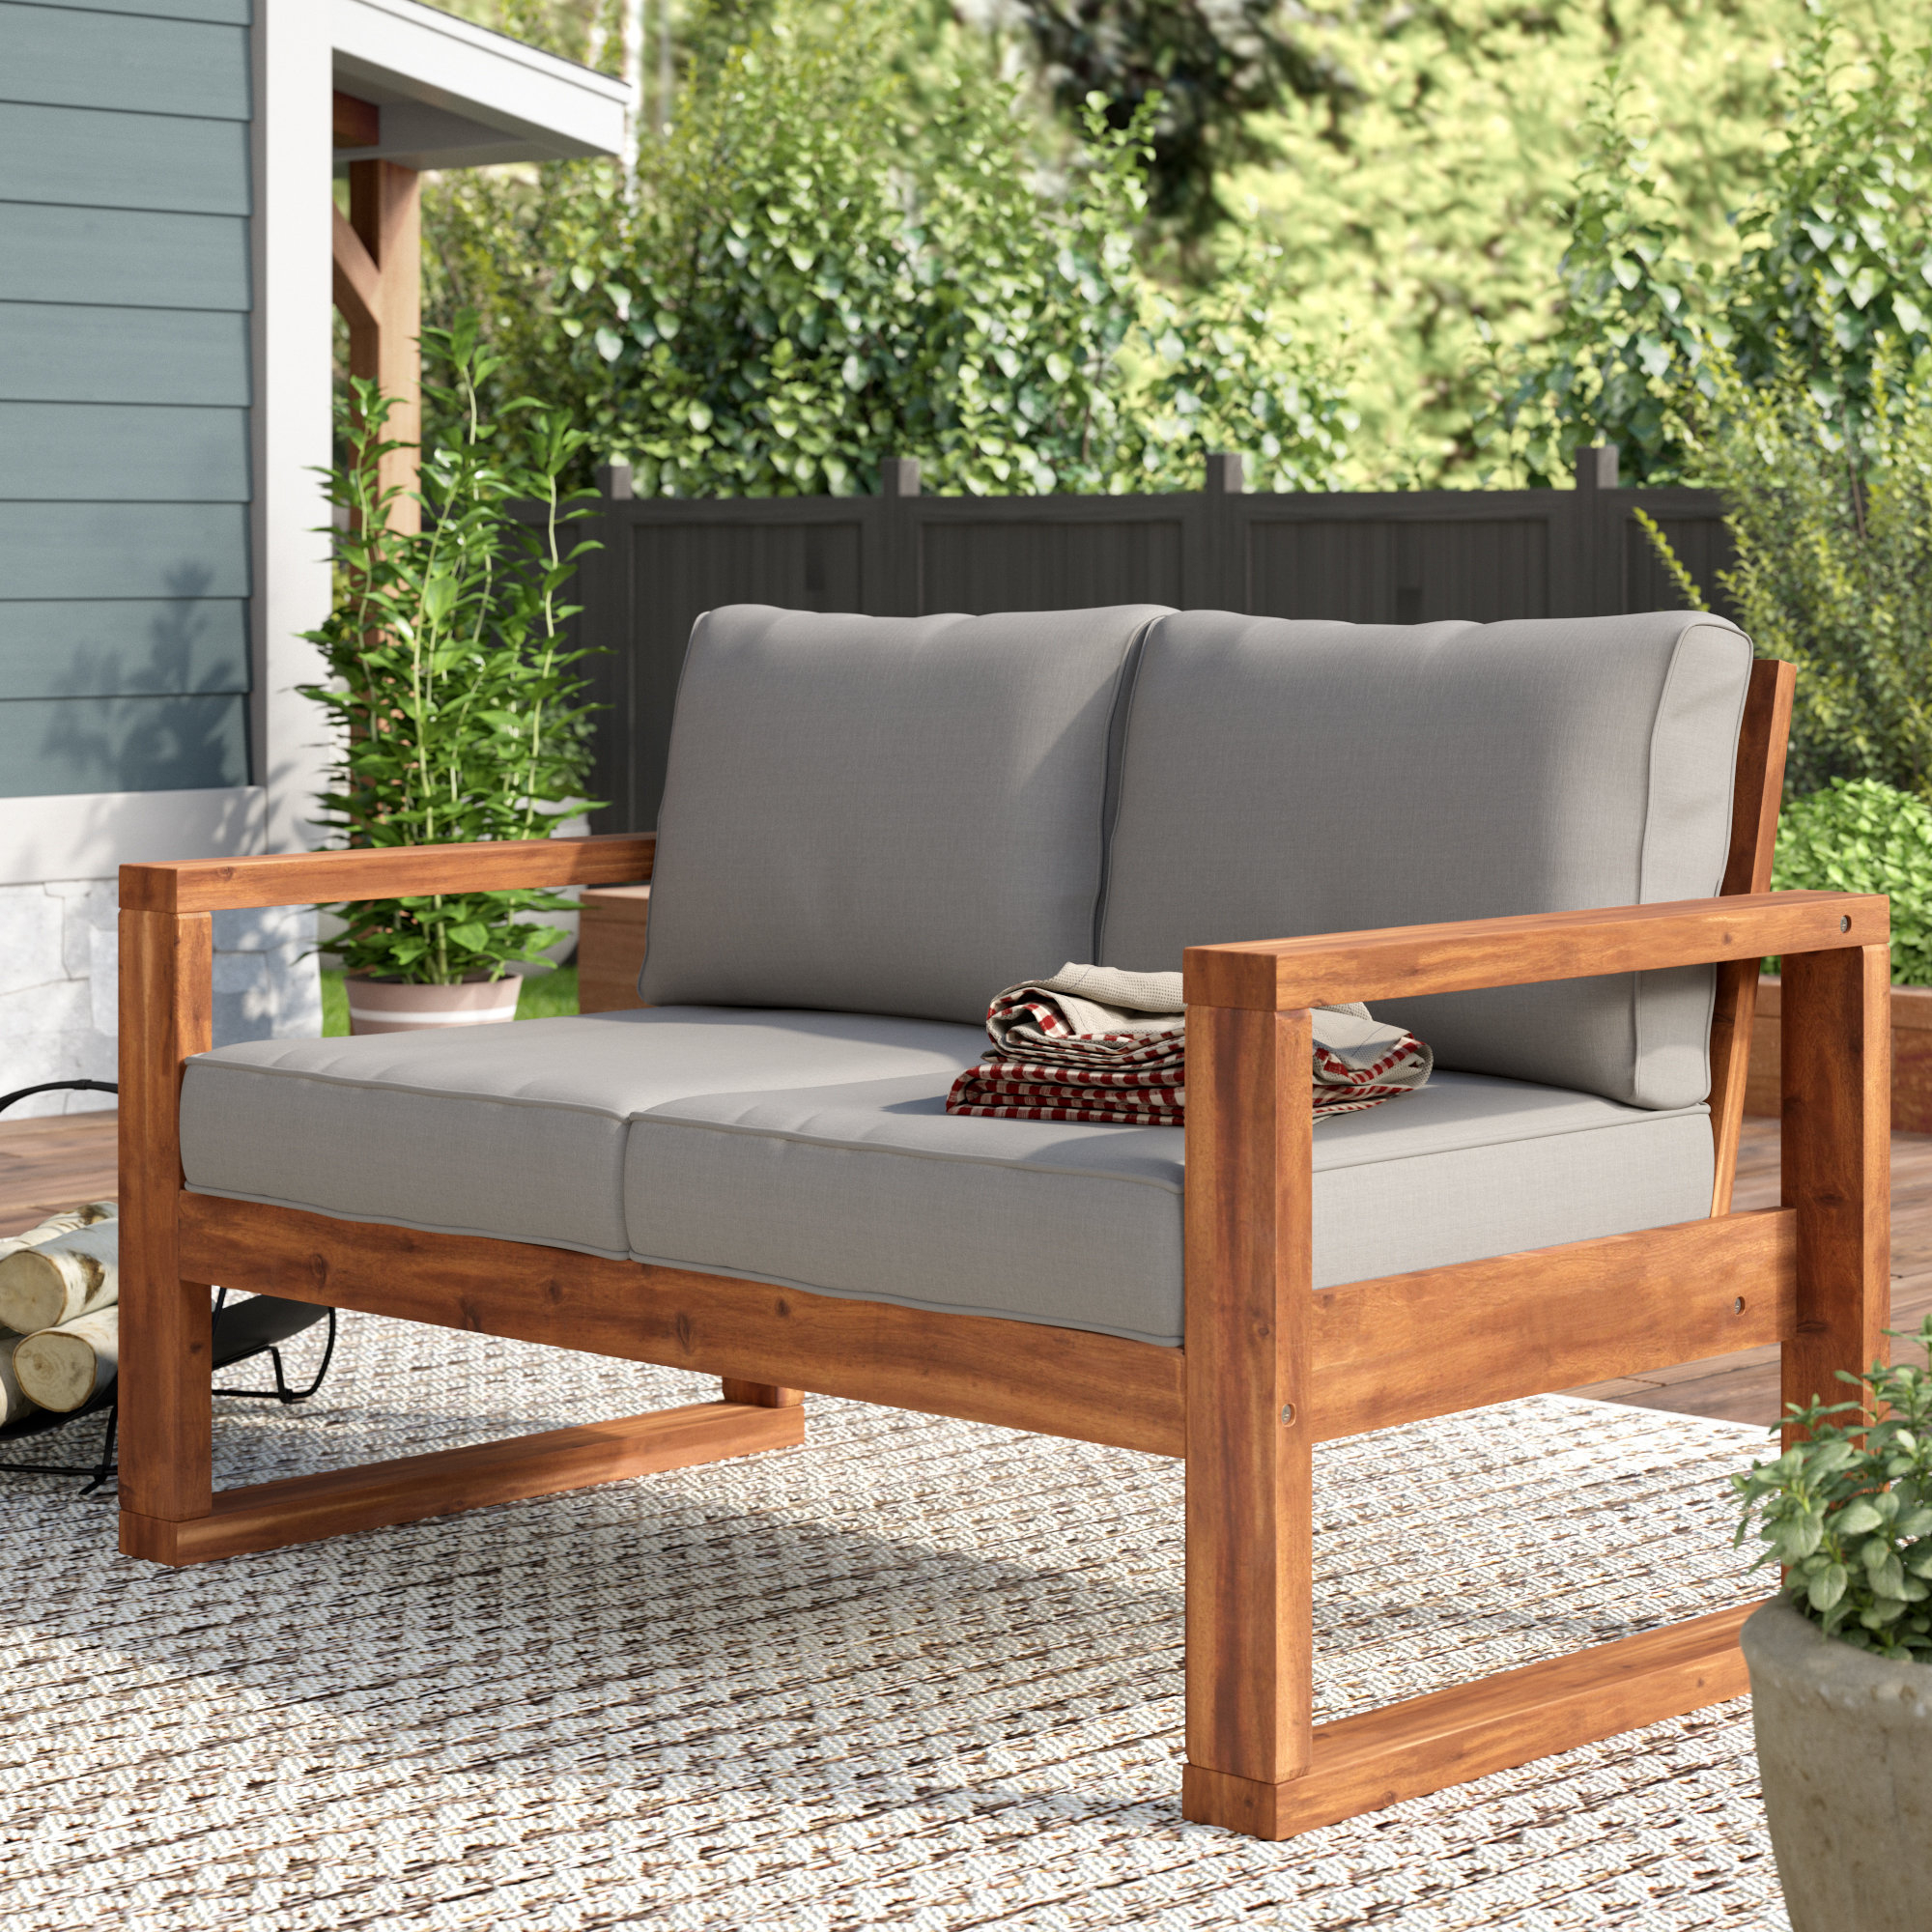 2019 Lyall Loveseat With Cushion In Lakeland Teak Loveseats With Cushions (View 1 of 20)